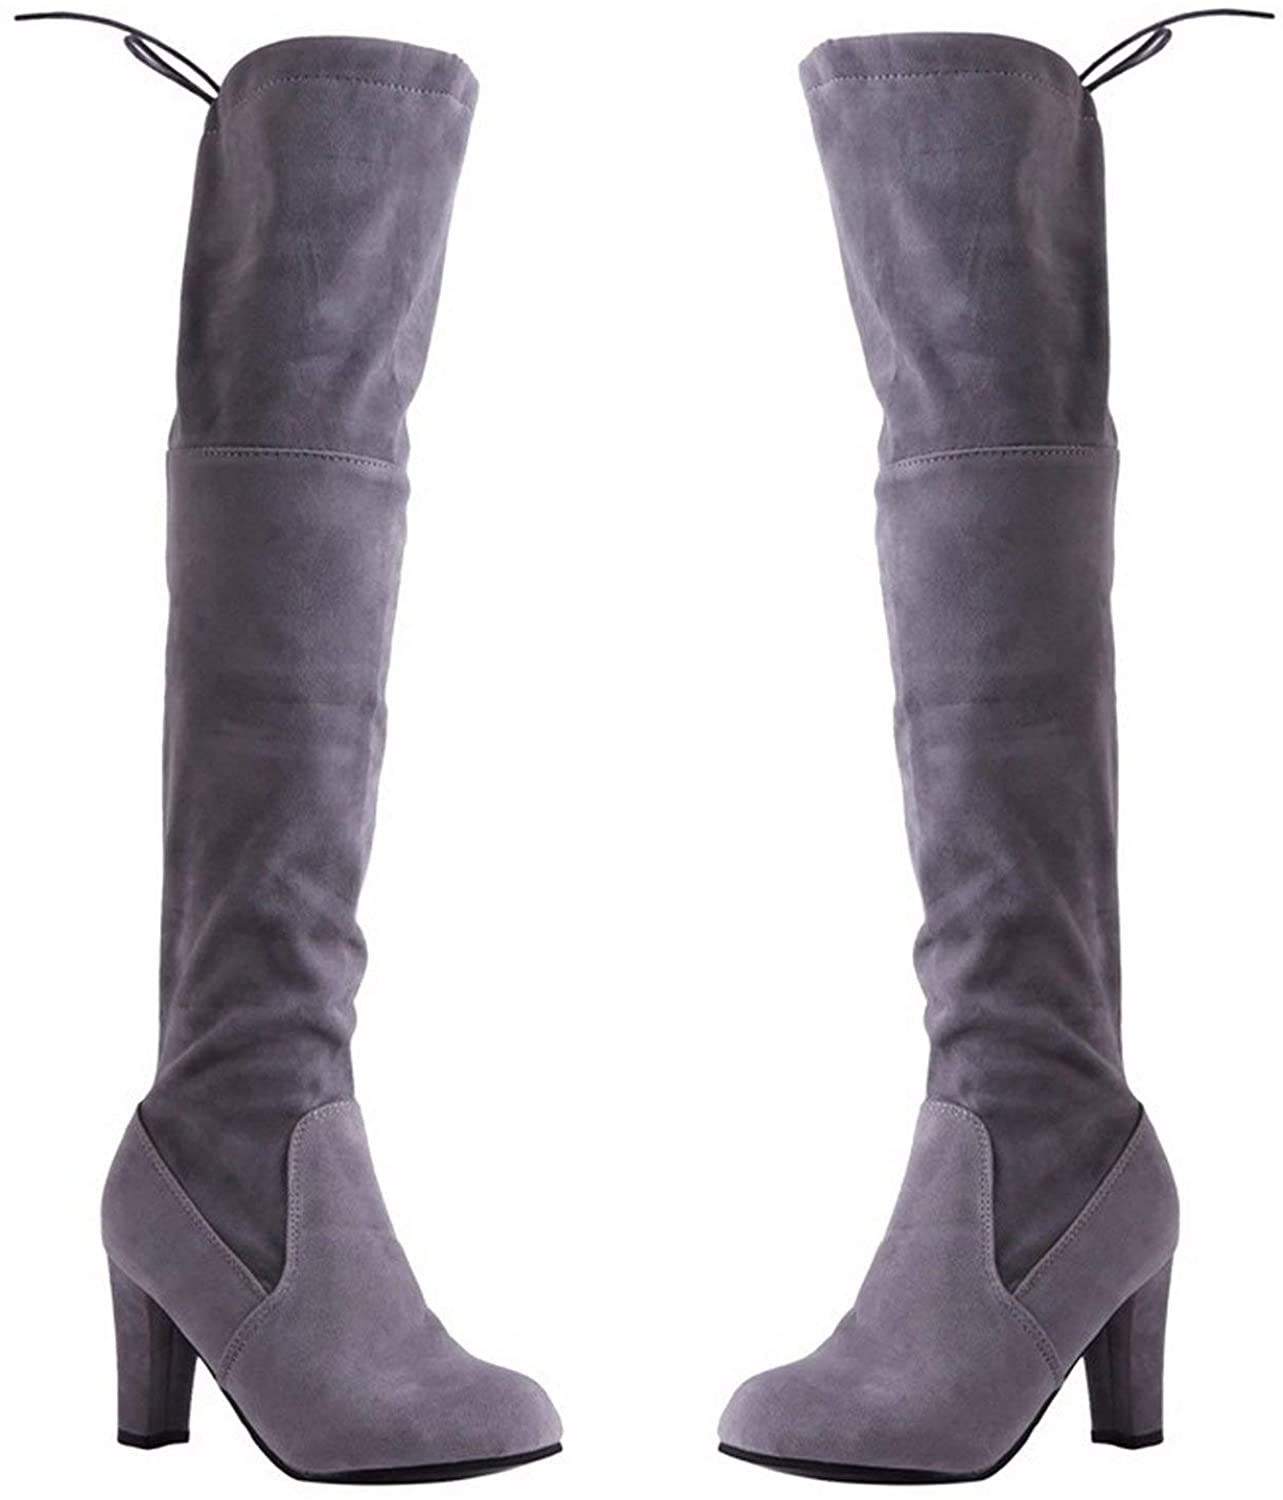 Have Fun With U Women High Heel Boots Ladies Over The Knee Boots Female Winter Shoes Women,Gray,9.5